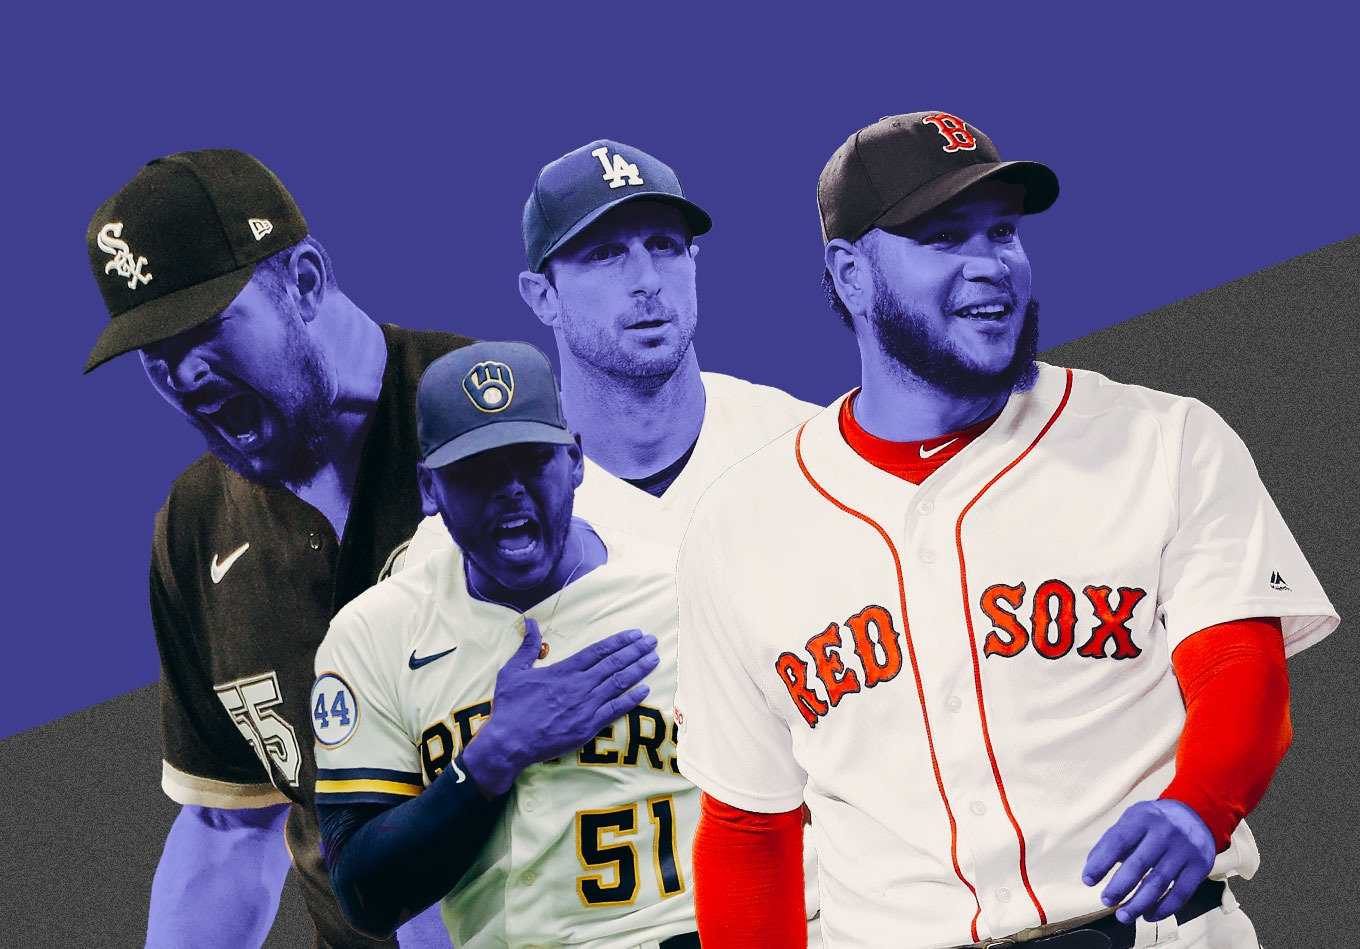 The Data Day No. 3: Our Rolling MLB Postseason Blog